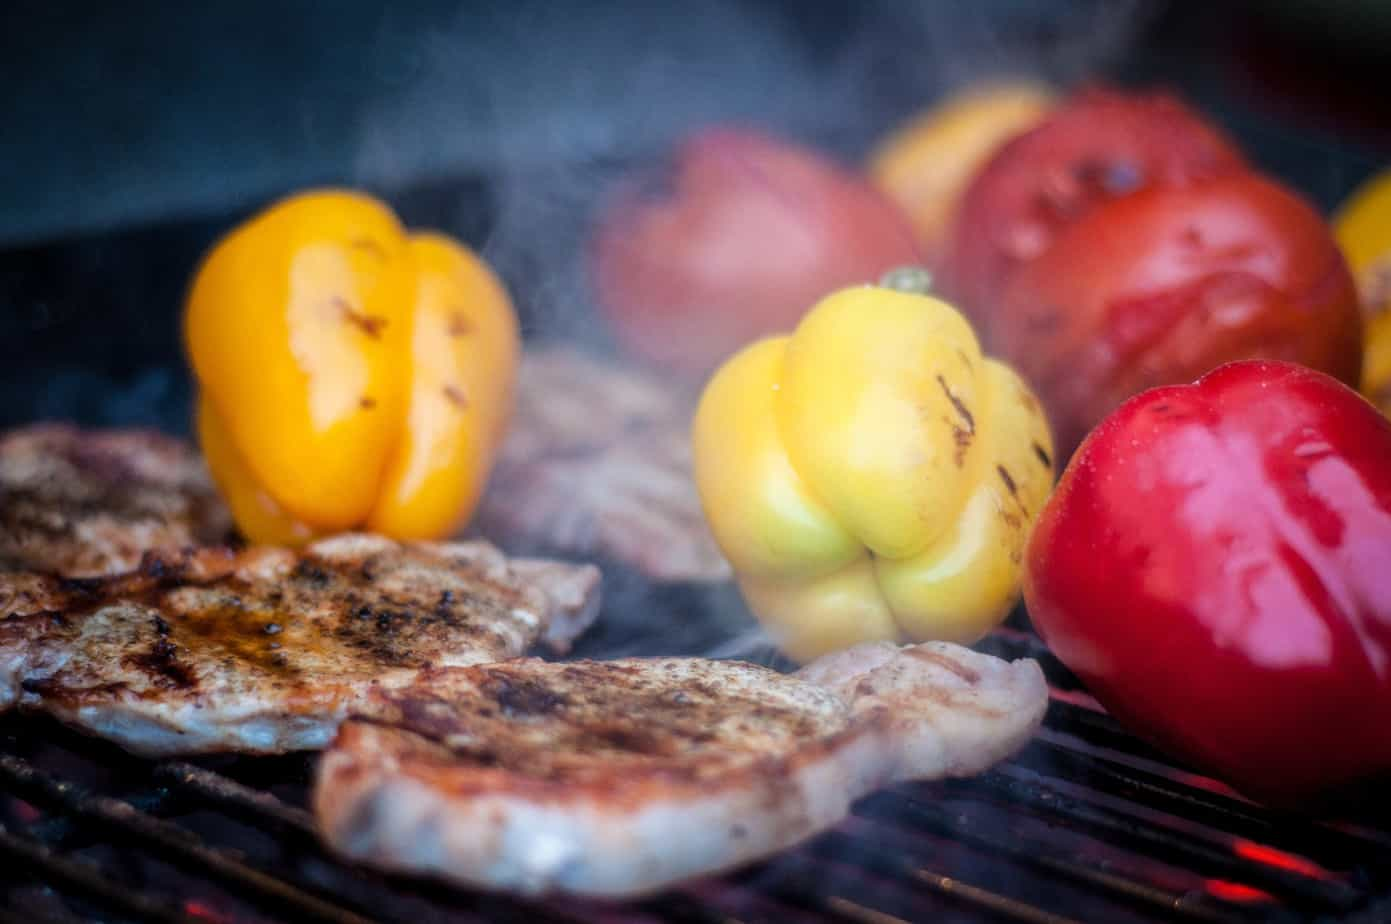 picture of grilling chicken and vegetables on bbq